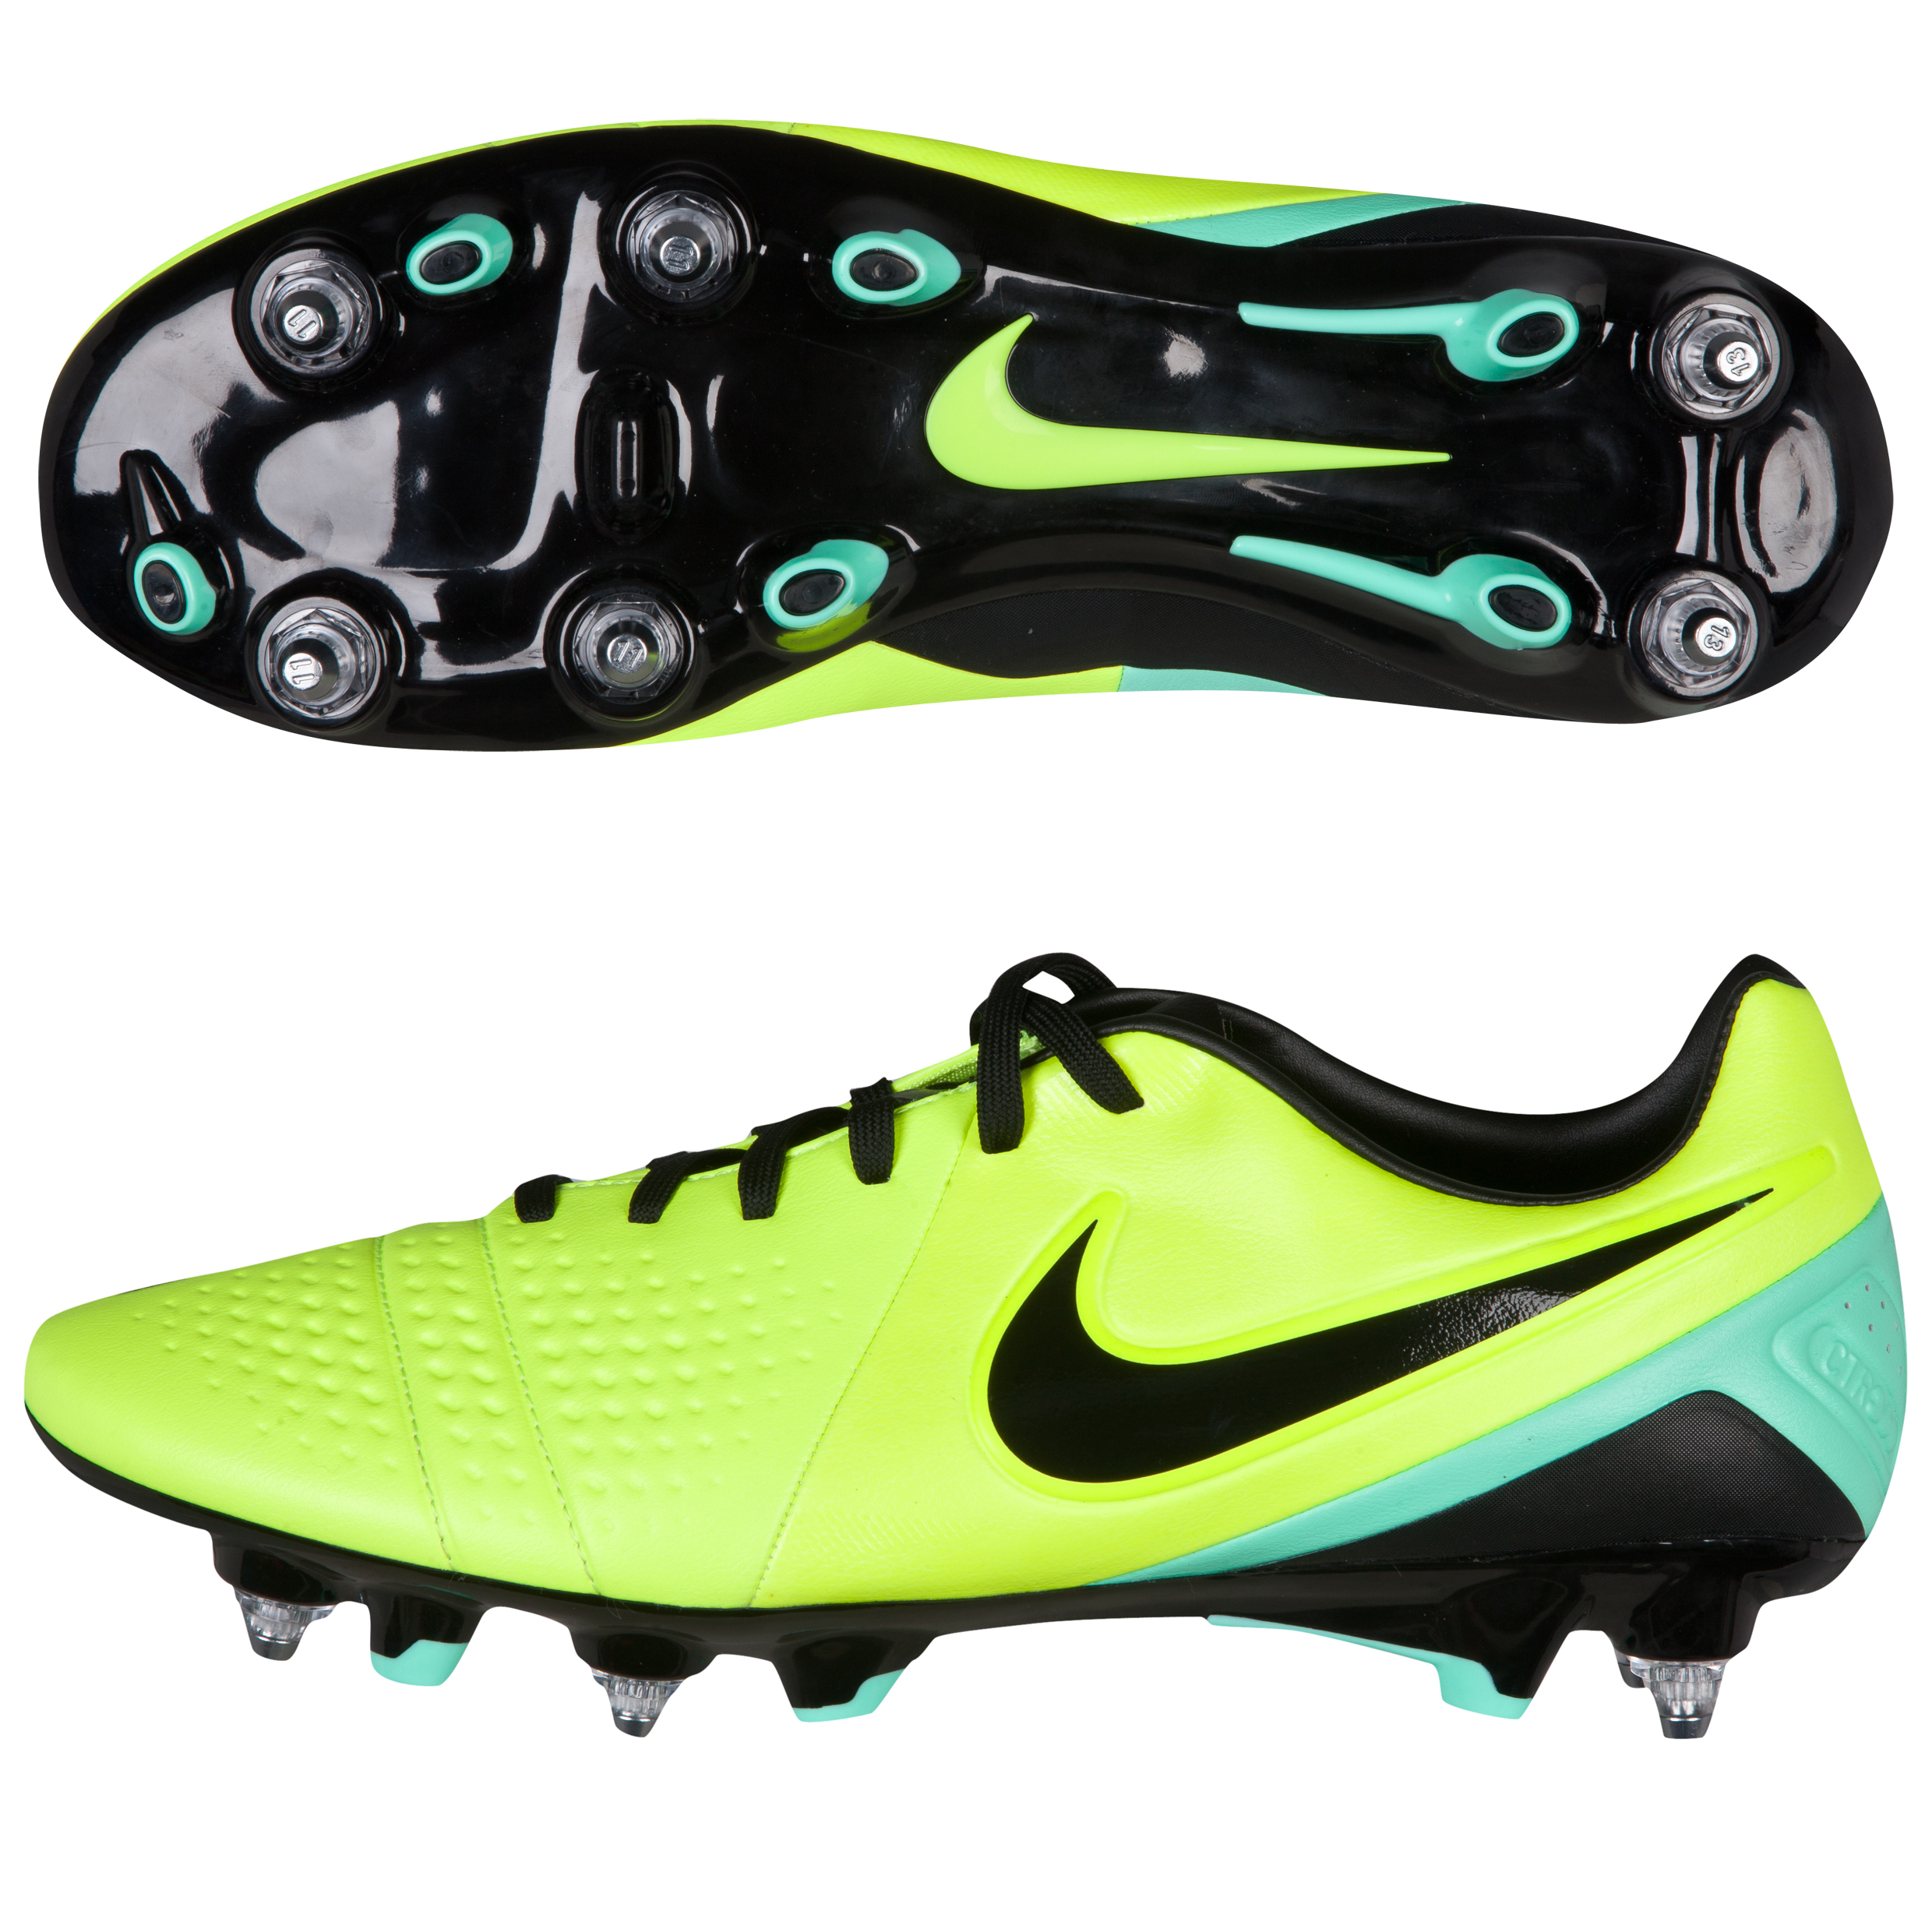 Nike CTR360 Trequrtsta 3 Soft Ground-Pro Football Boots Yellow